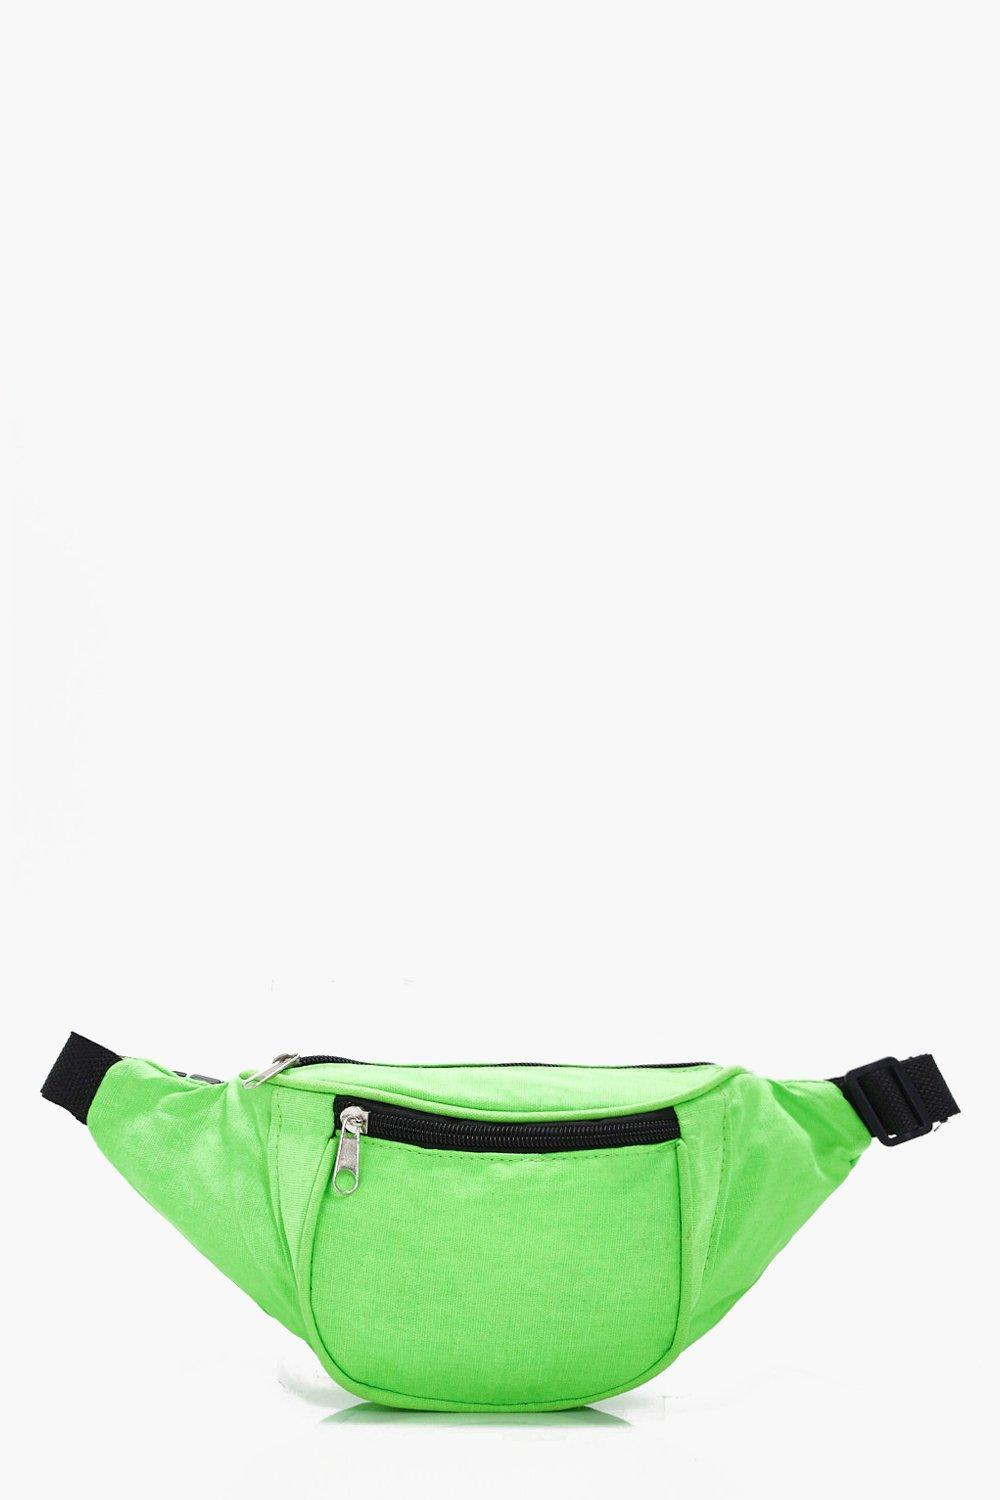 Bright Neon Bumbag - green - Katie Bright Neon Bum